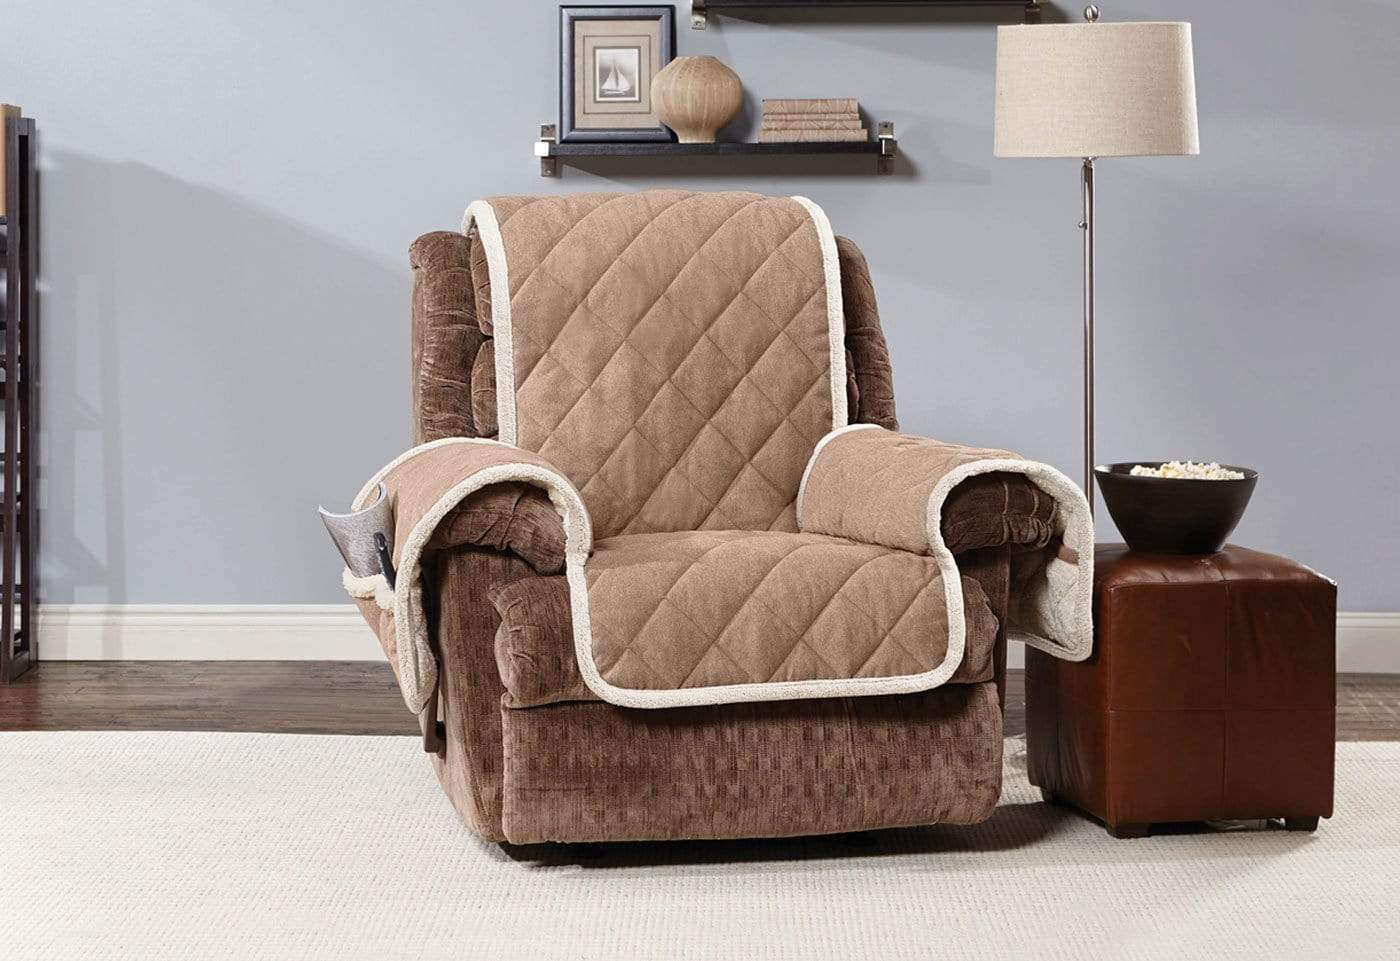 Soft Suede & Sherpa Recliner Furniture Cover 100% Polyester Pet Furniture Cover Machine Washable - Recliner / Brown/Cream